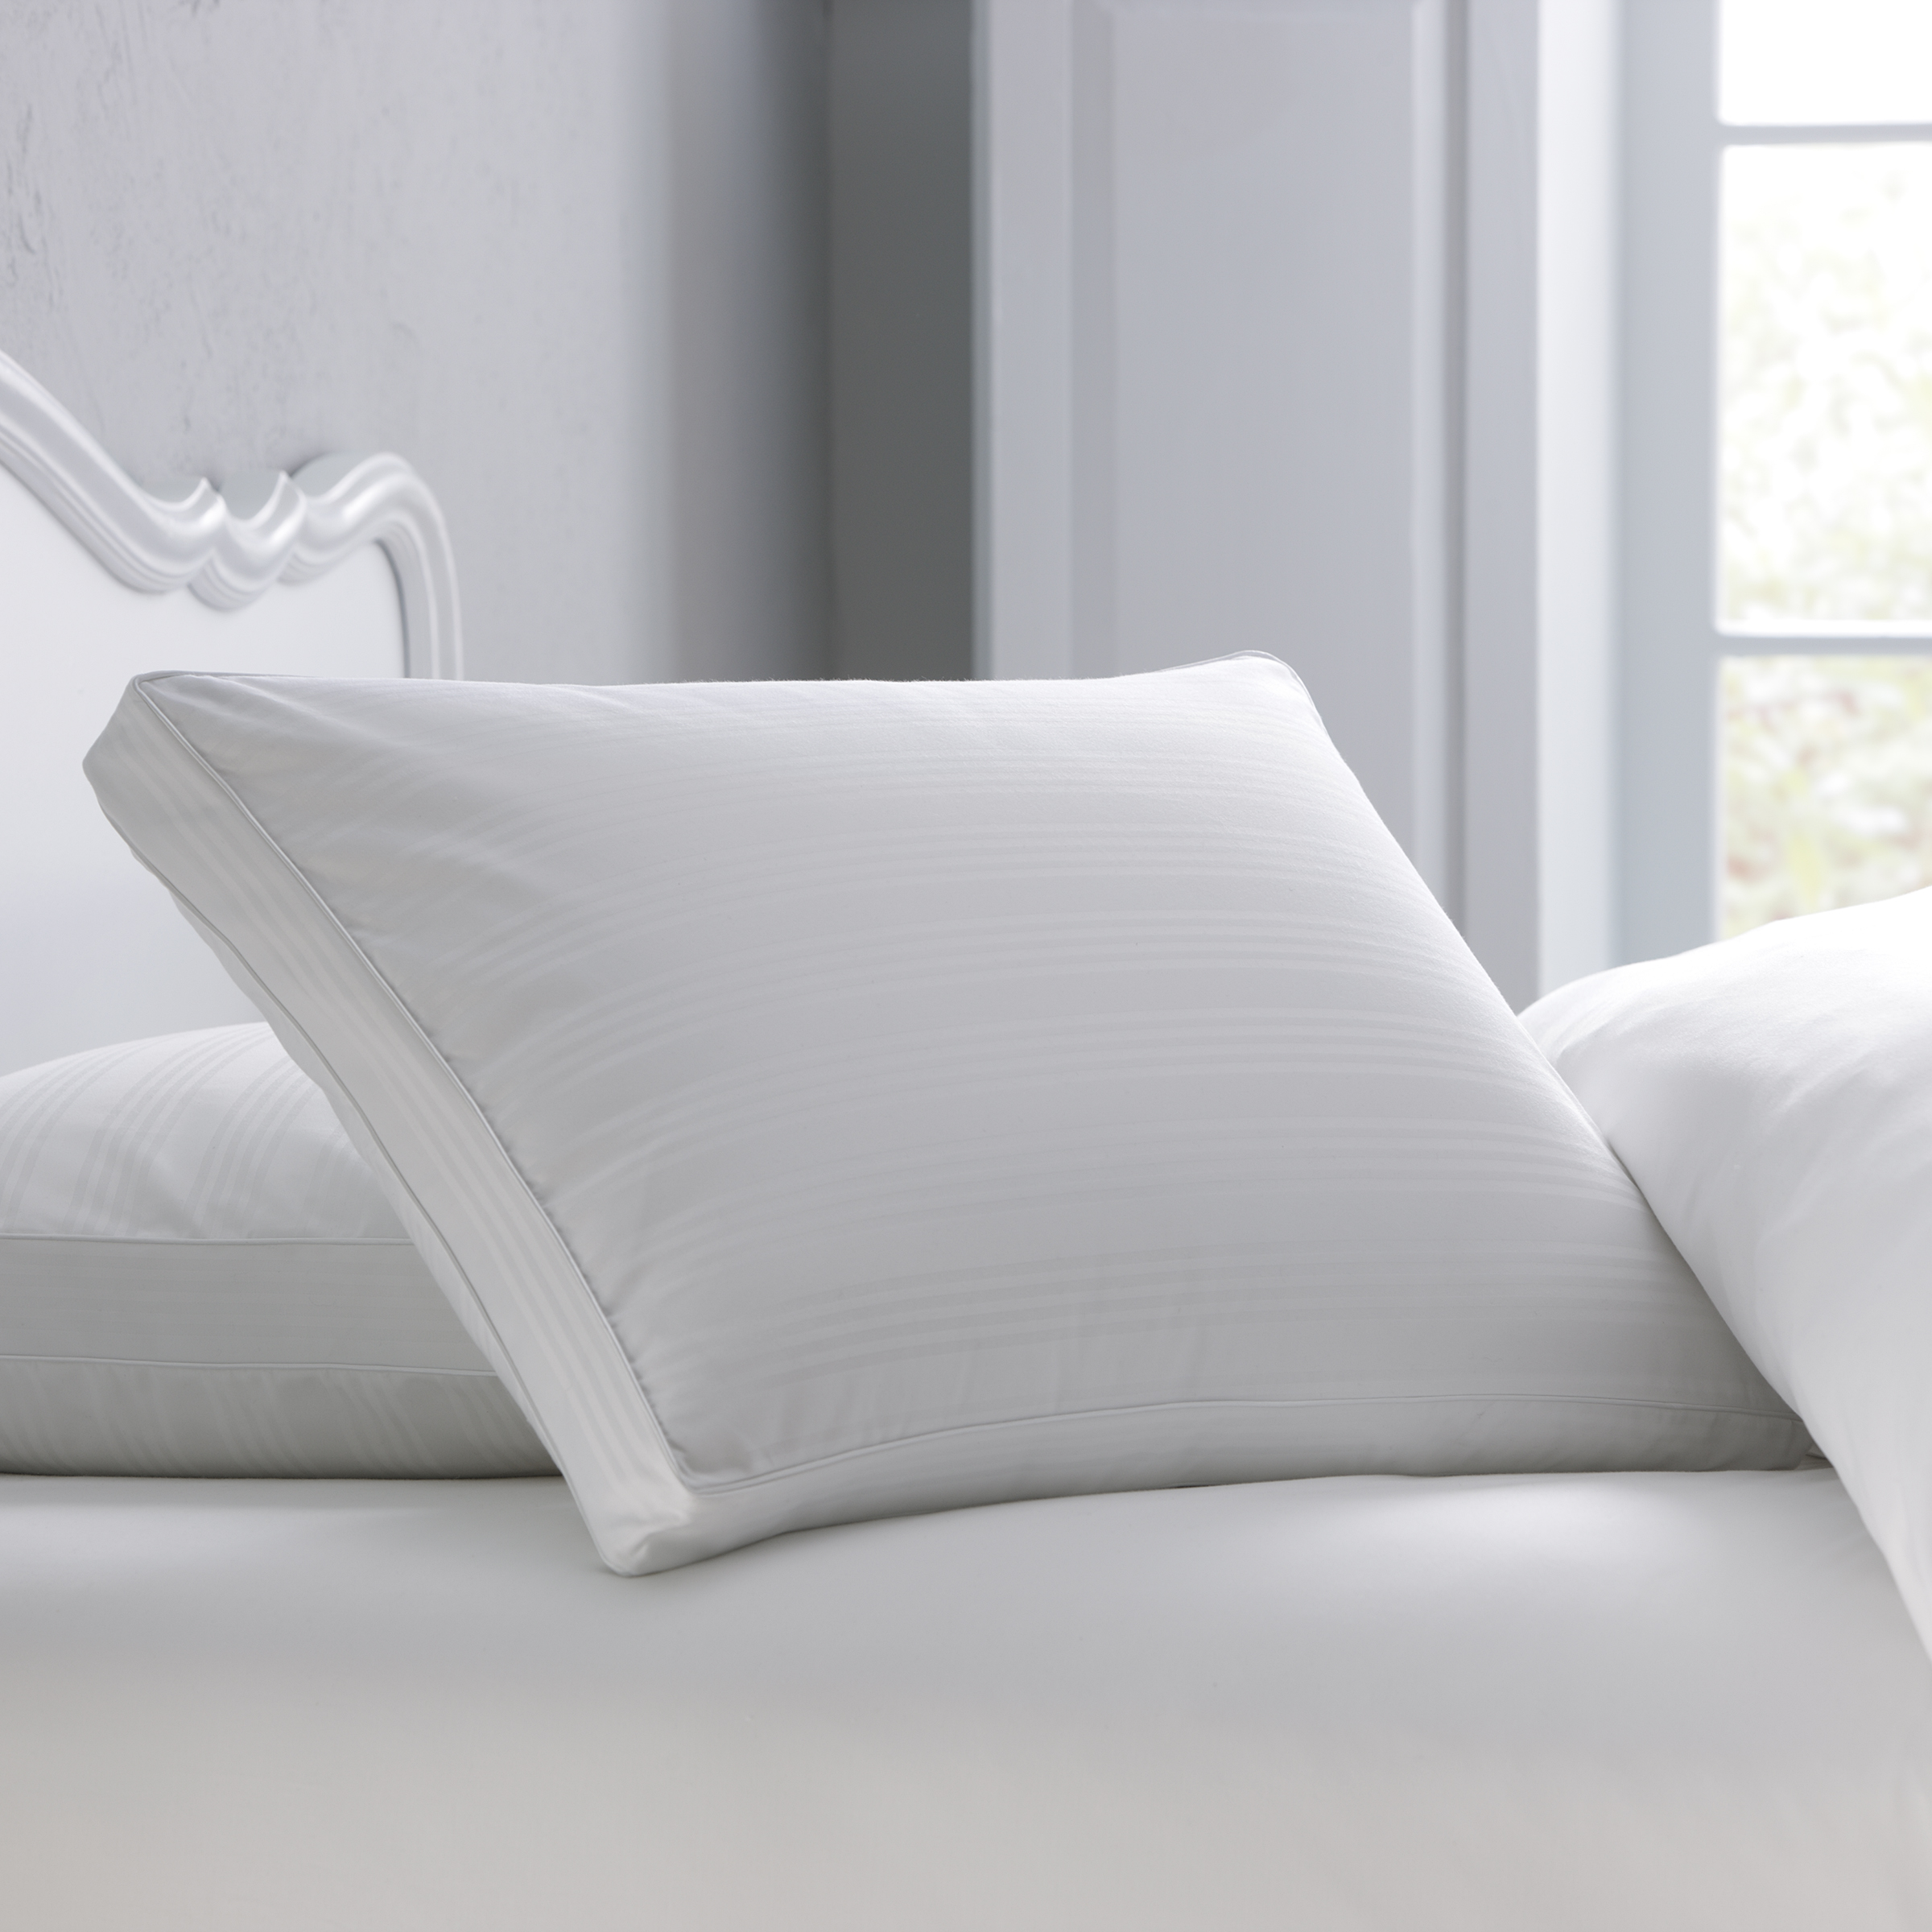 GoLinens: Pacific Coast Spring Air Grand Impression Graduated Gusset Firm Density Cotton Pillow for Back Sleepers (5 yrs Warranty)